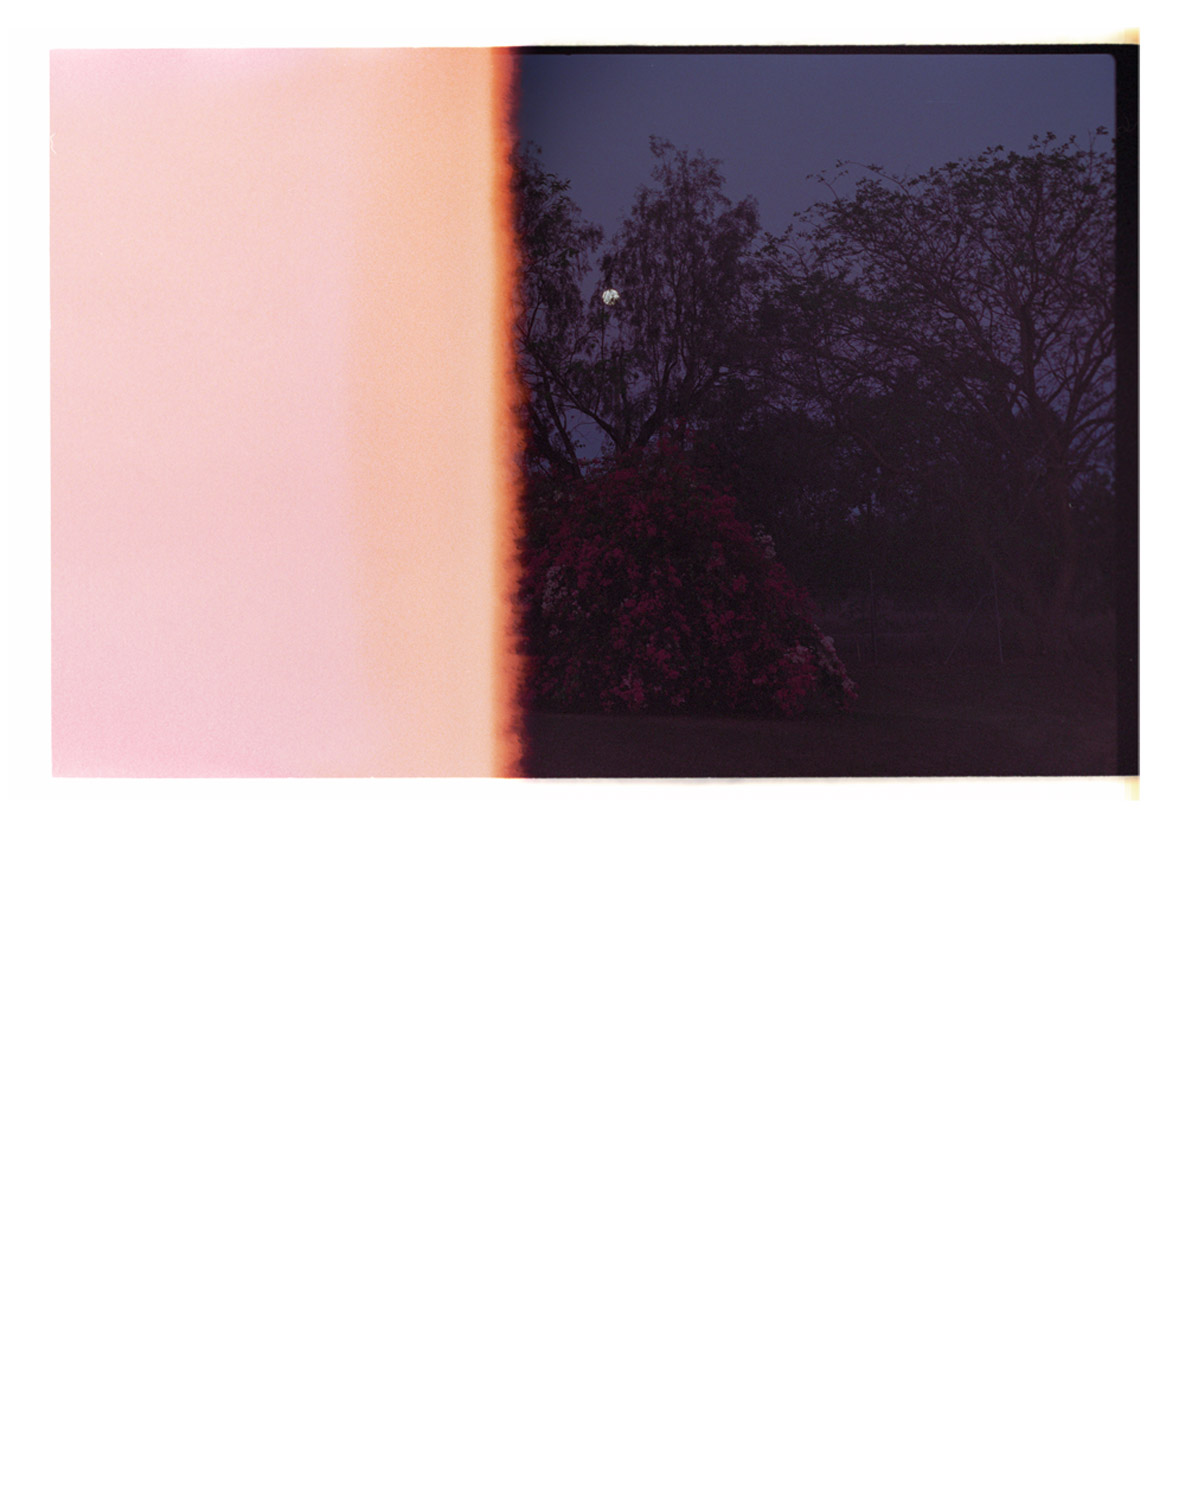 Away with it all [by dawn] 2010 (2013). Archival Inkjet Print on Hahnemühle Photo Rag. 48 x 33cm. Edition of 5 + 2AP.